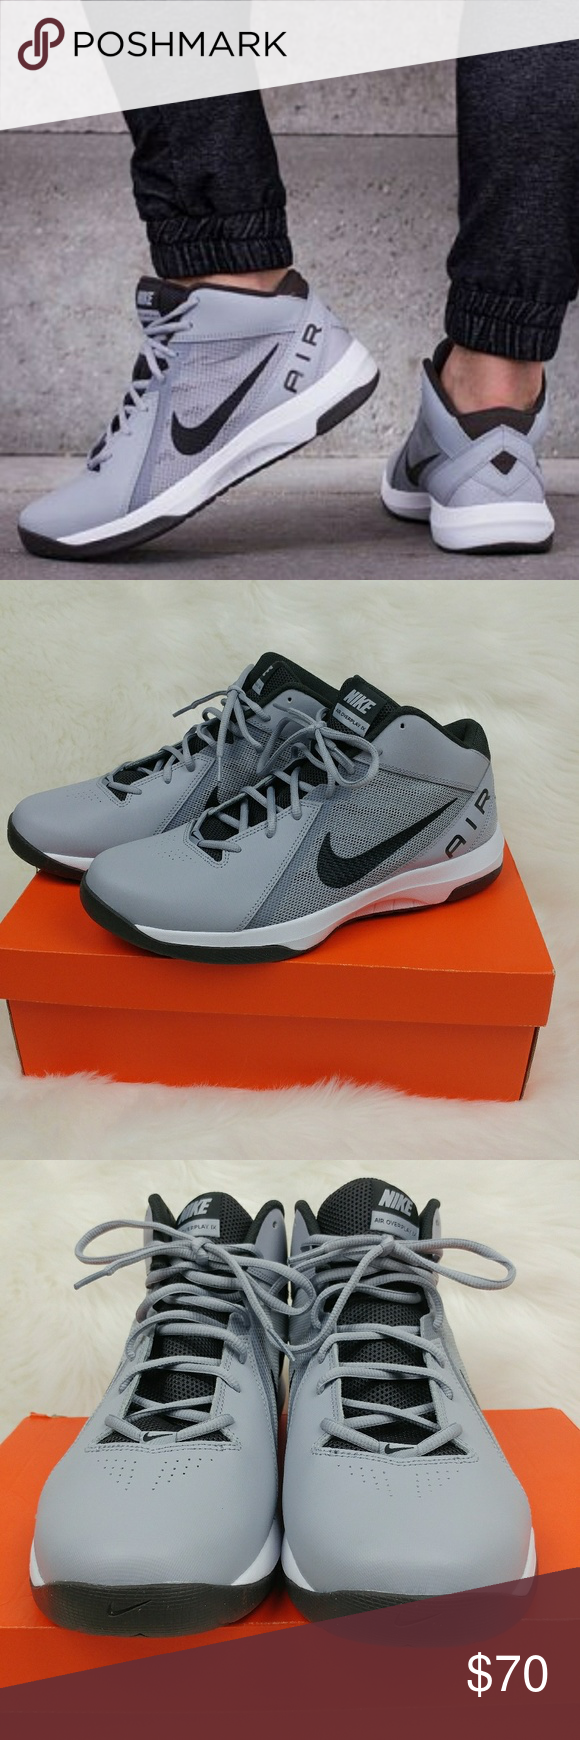 Nike The Air Overplay IX Mens Basketball Shoes New in Box